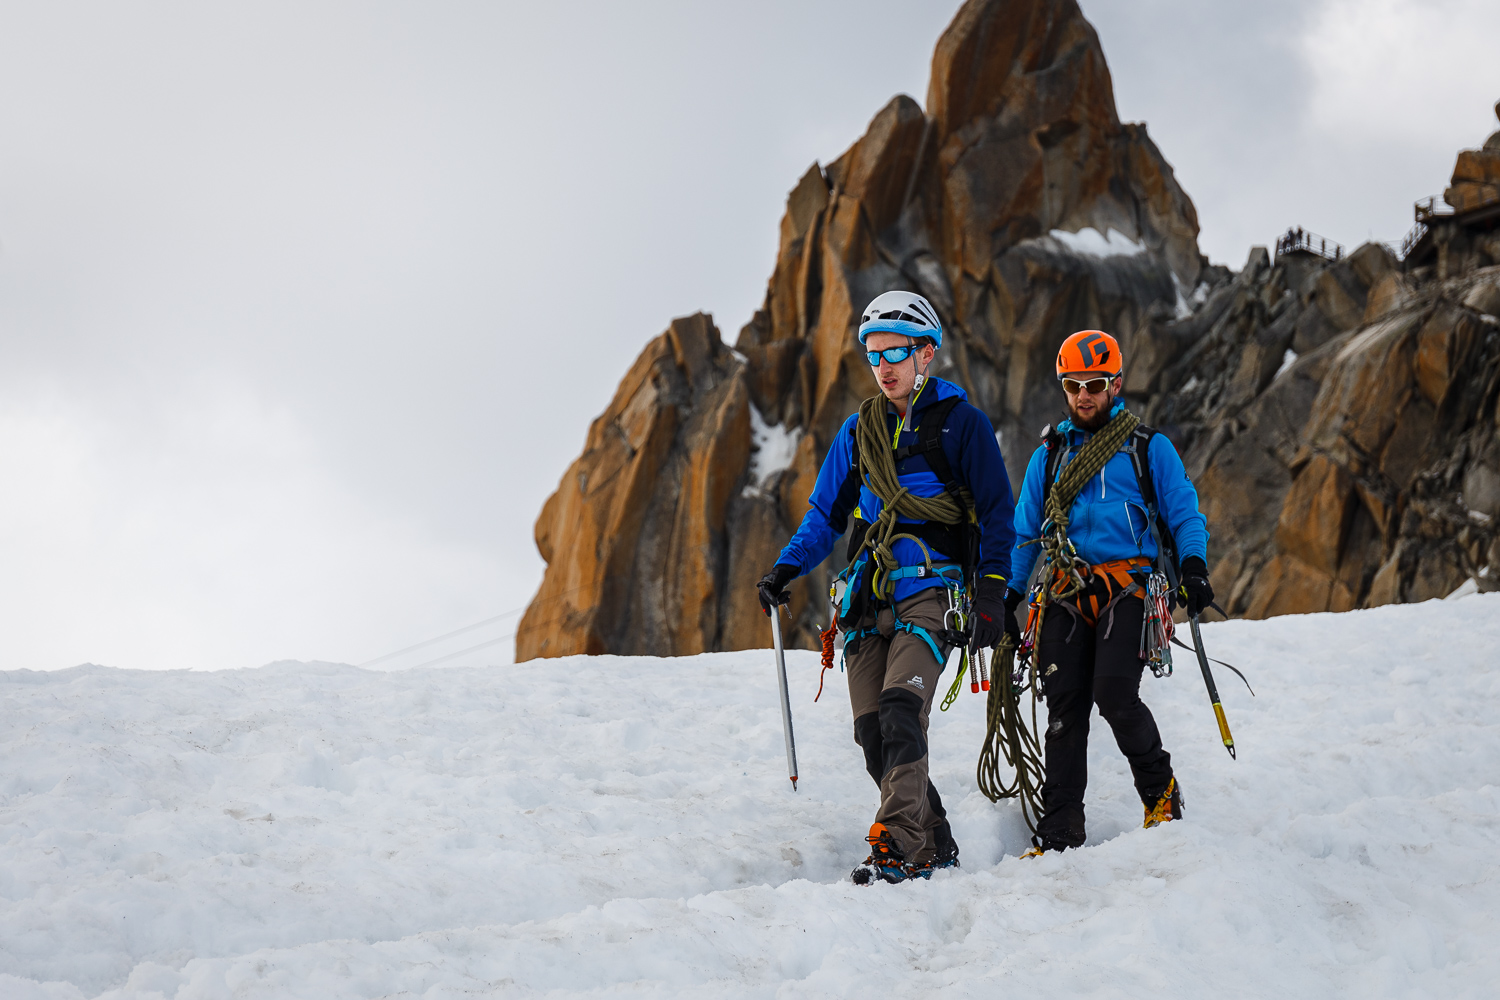 Two of my party heading down the Midi snow arête on our acclimatisation day. Canon 6d, 24-70mm F4L IS @ 70mm, 1/800s, f/4.0, ISO 100.